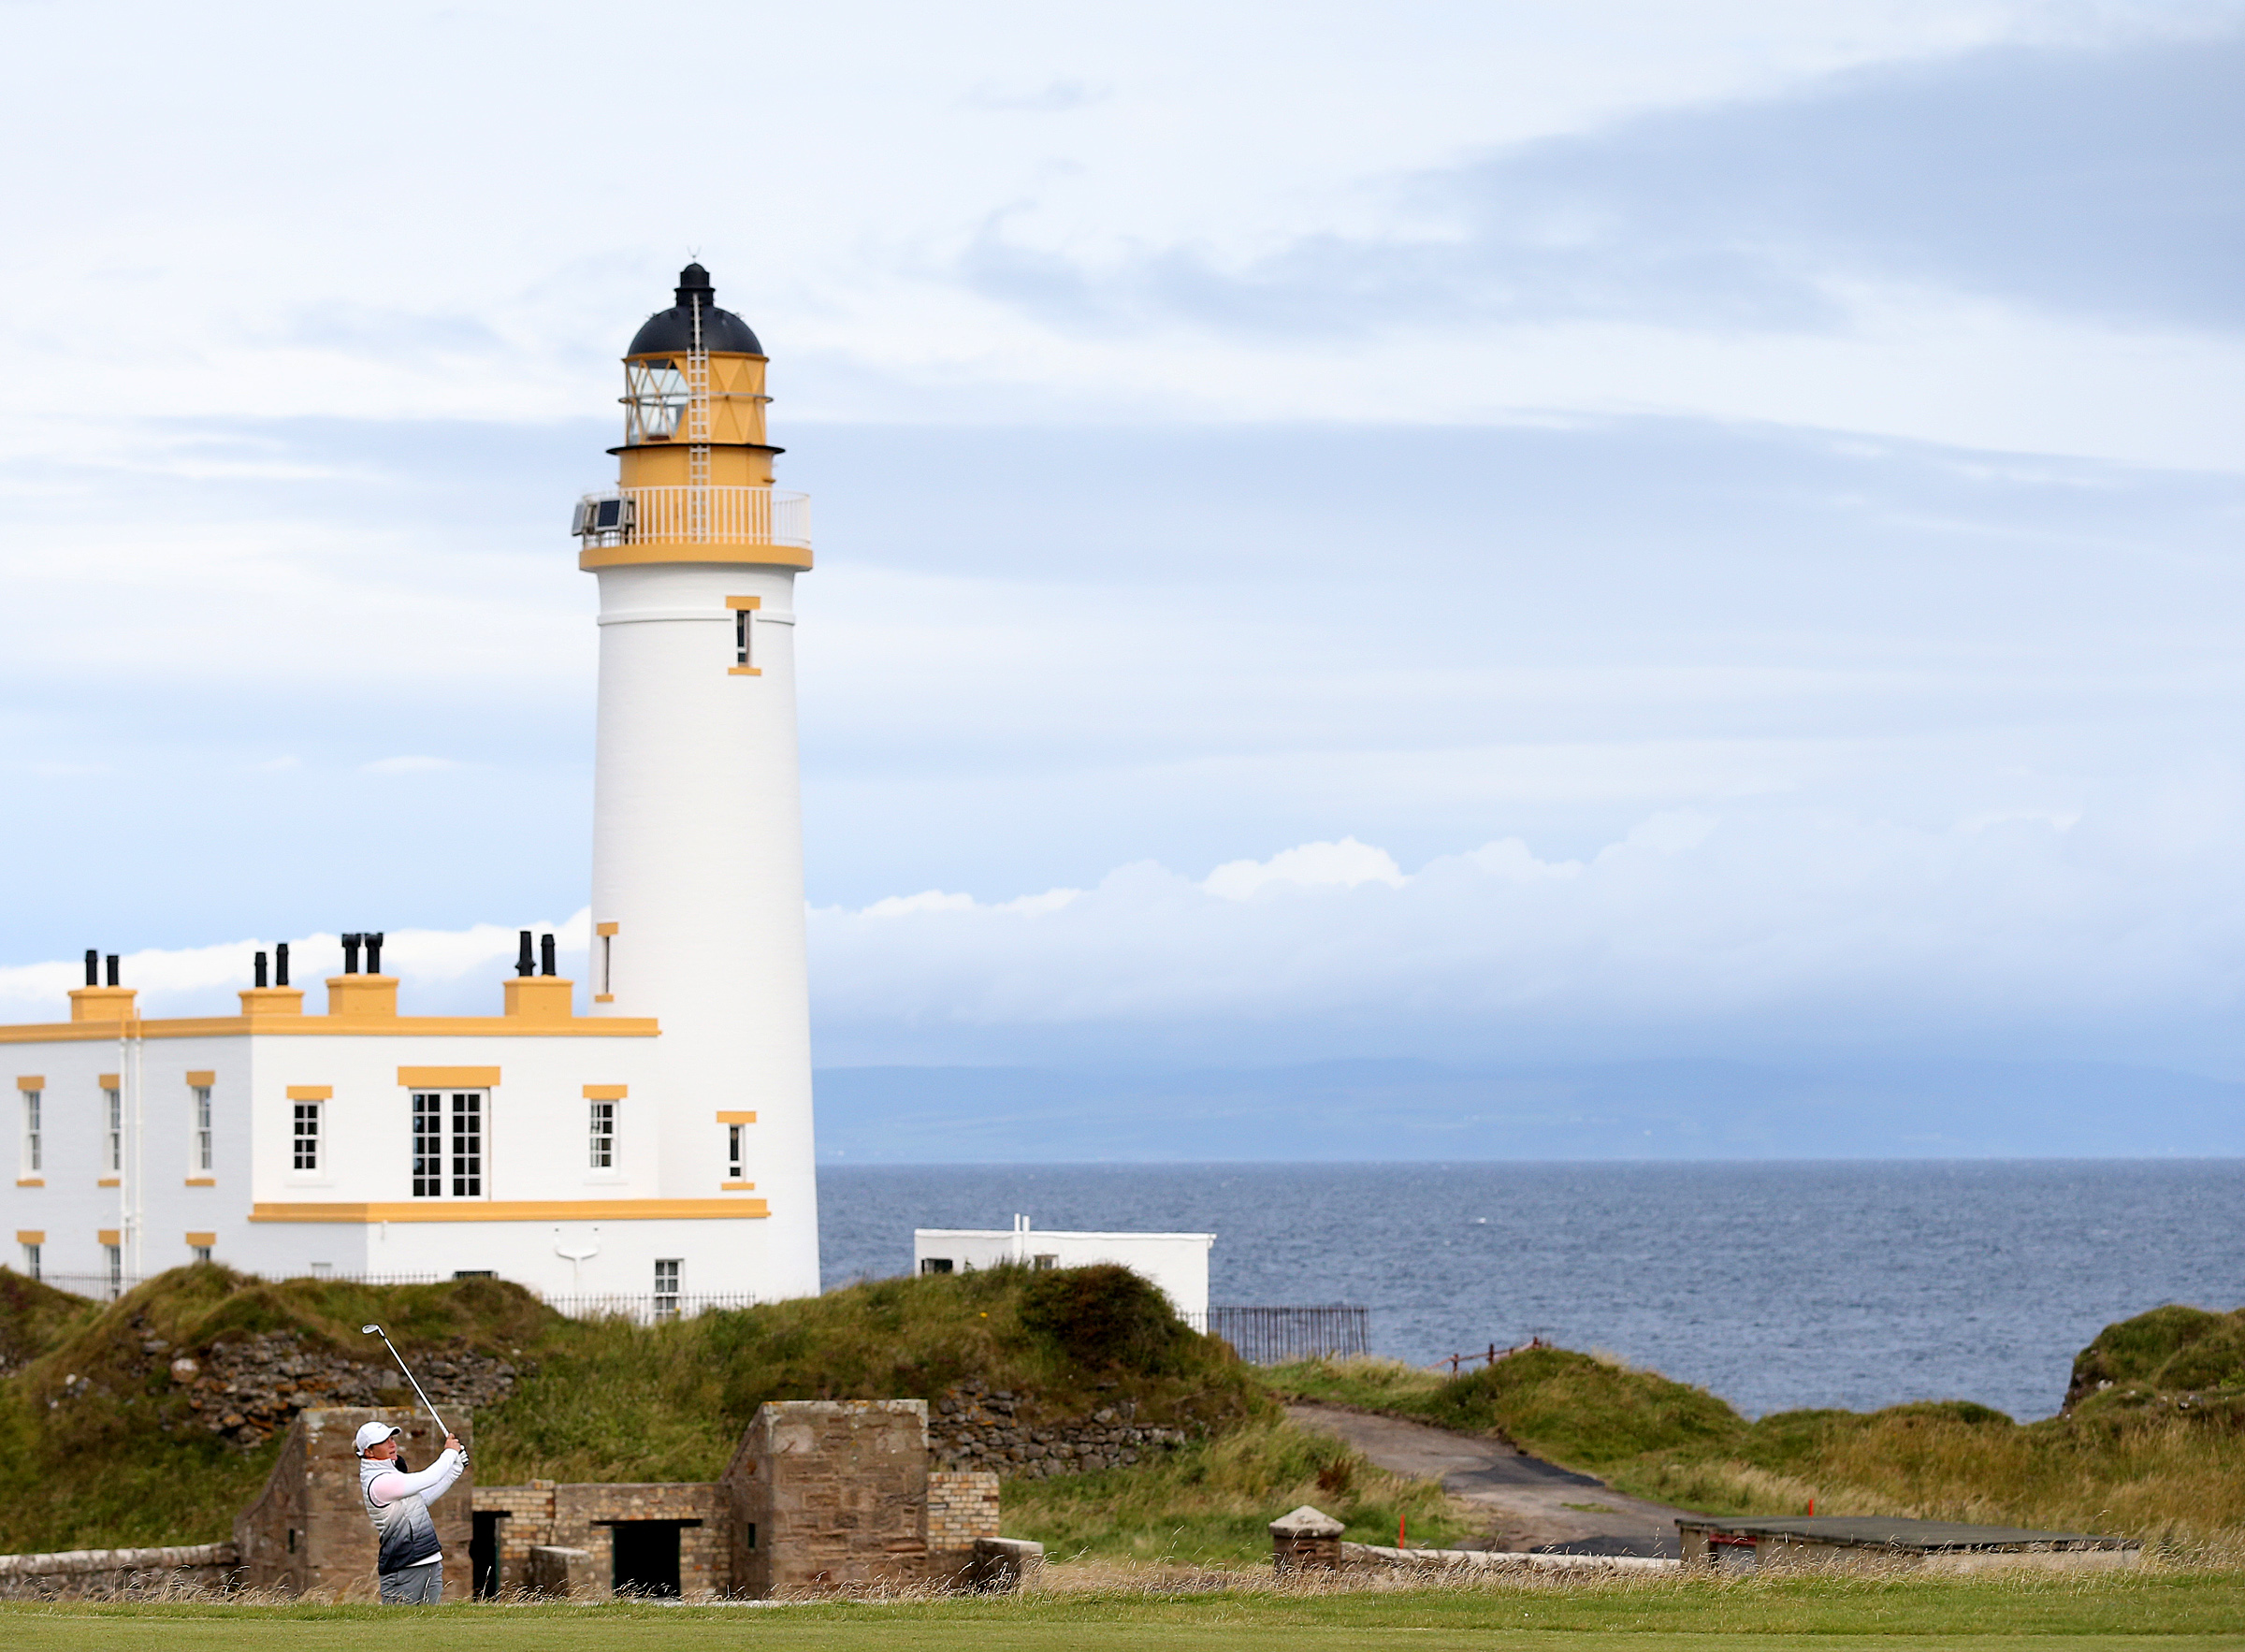 Suzann Pettersen on the 9th fairway during the second day of the Women's British Open at Turnberry.